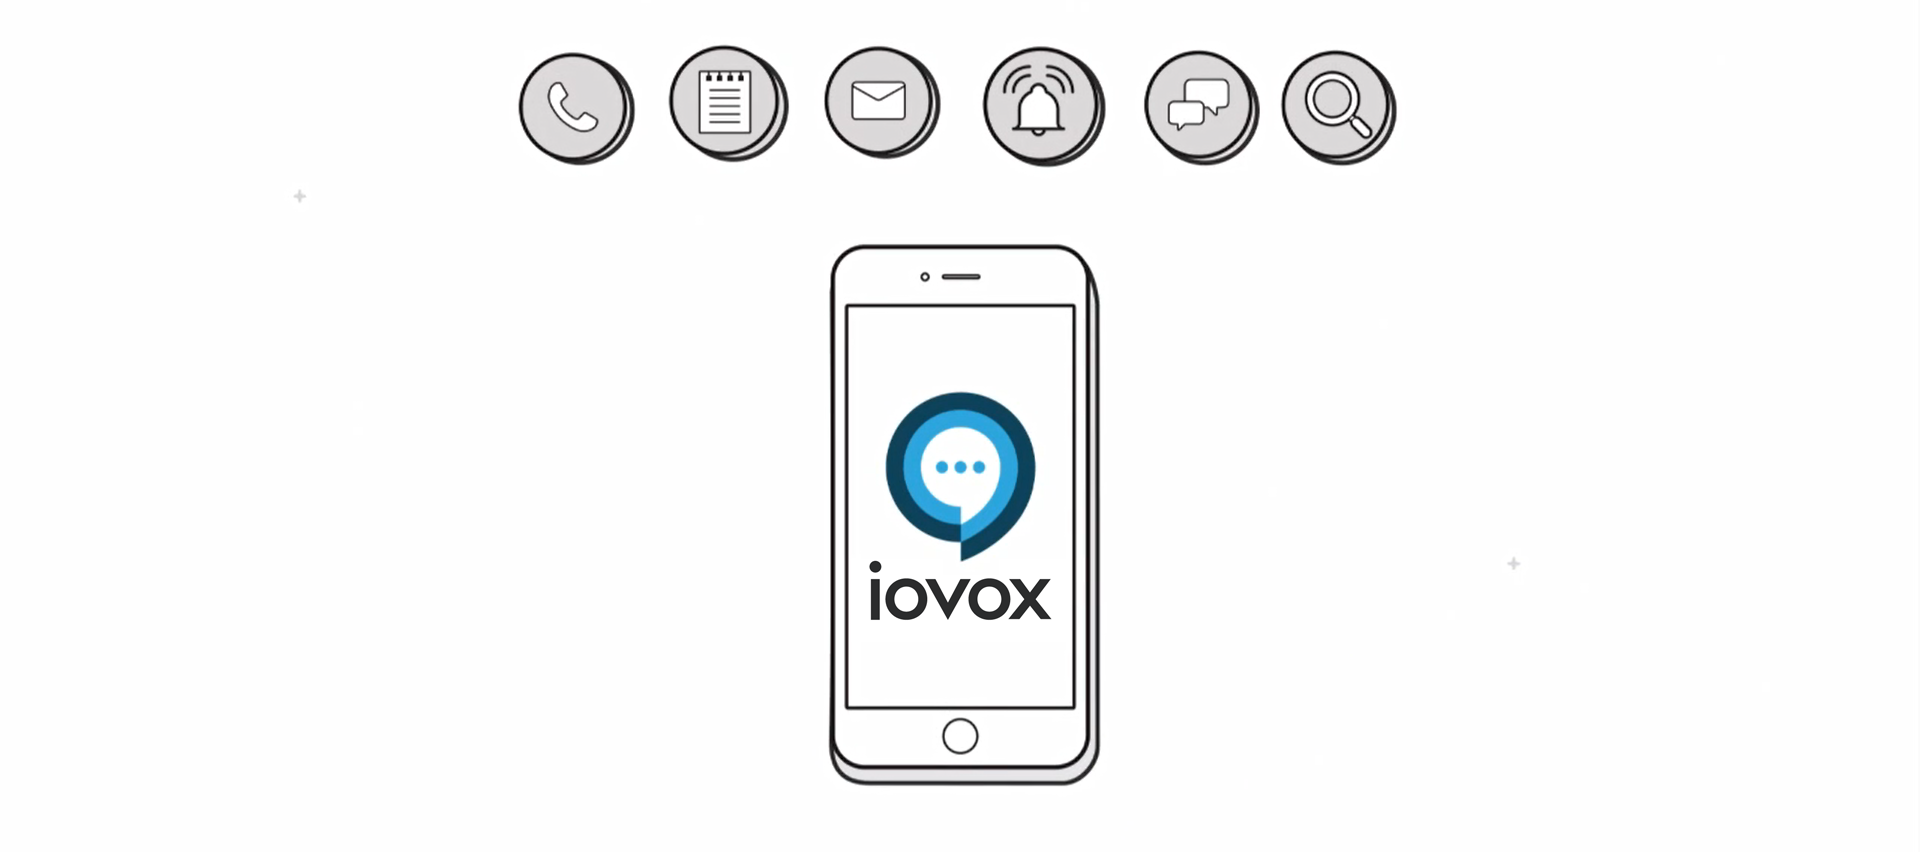 iovox Phone Call Productivity